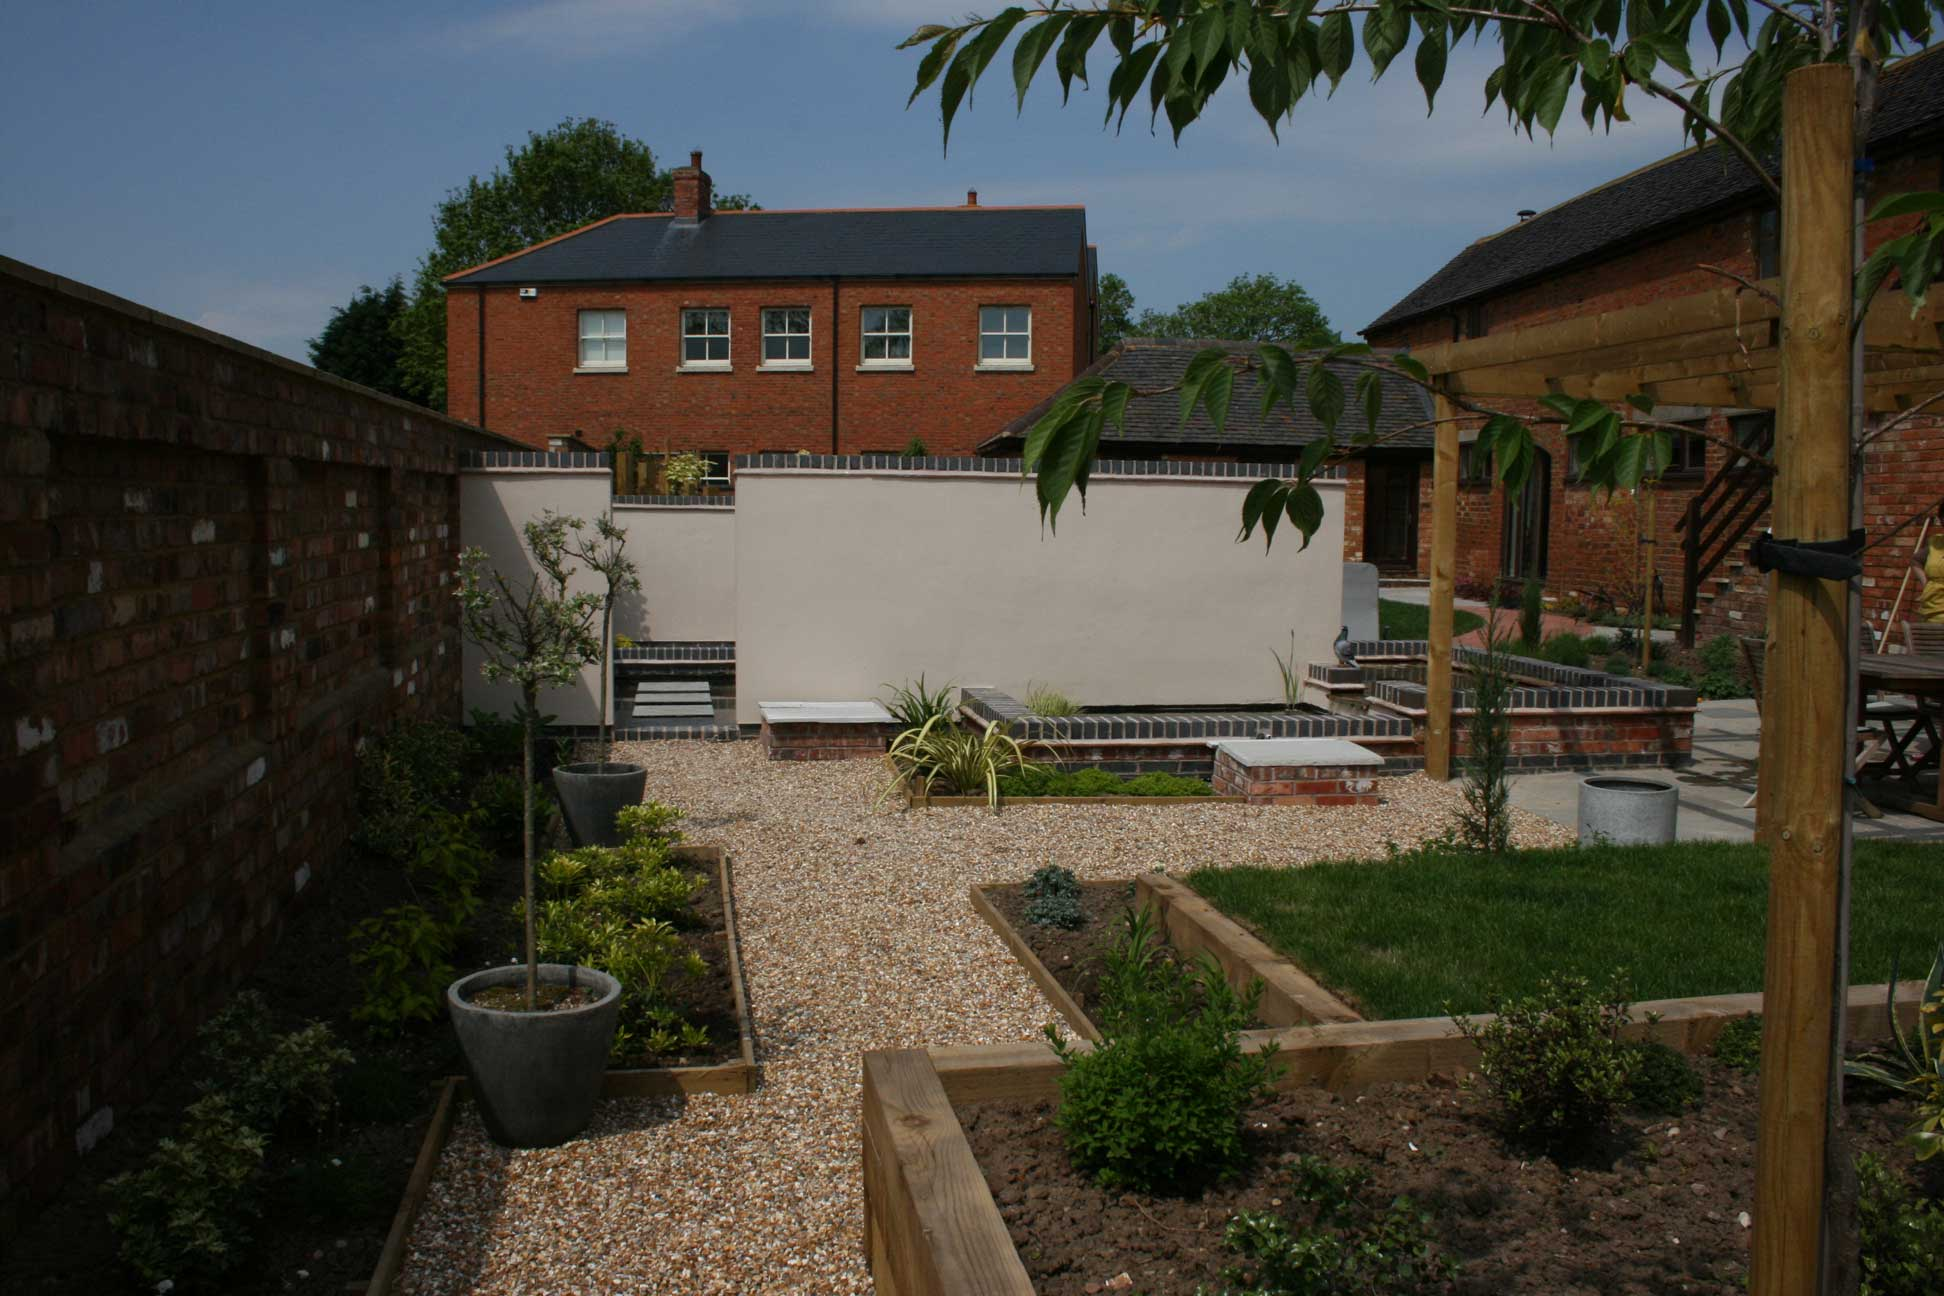 Wall to create divisions in large courtyard garden